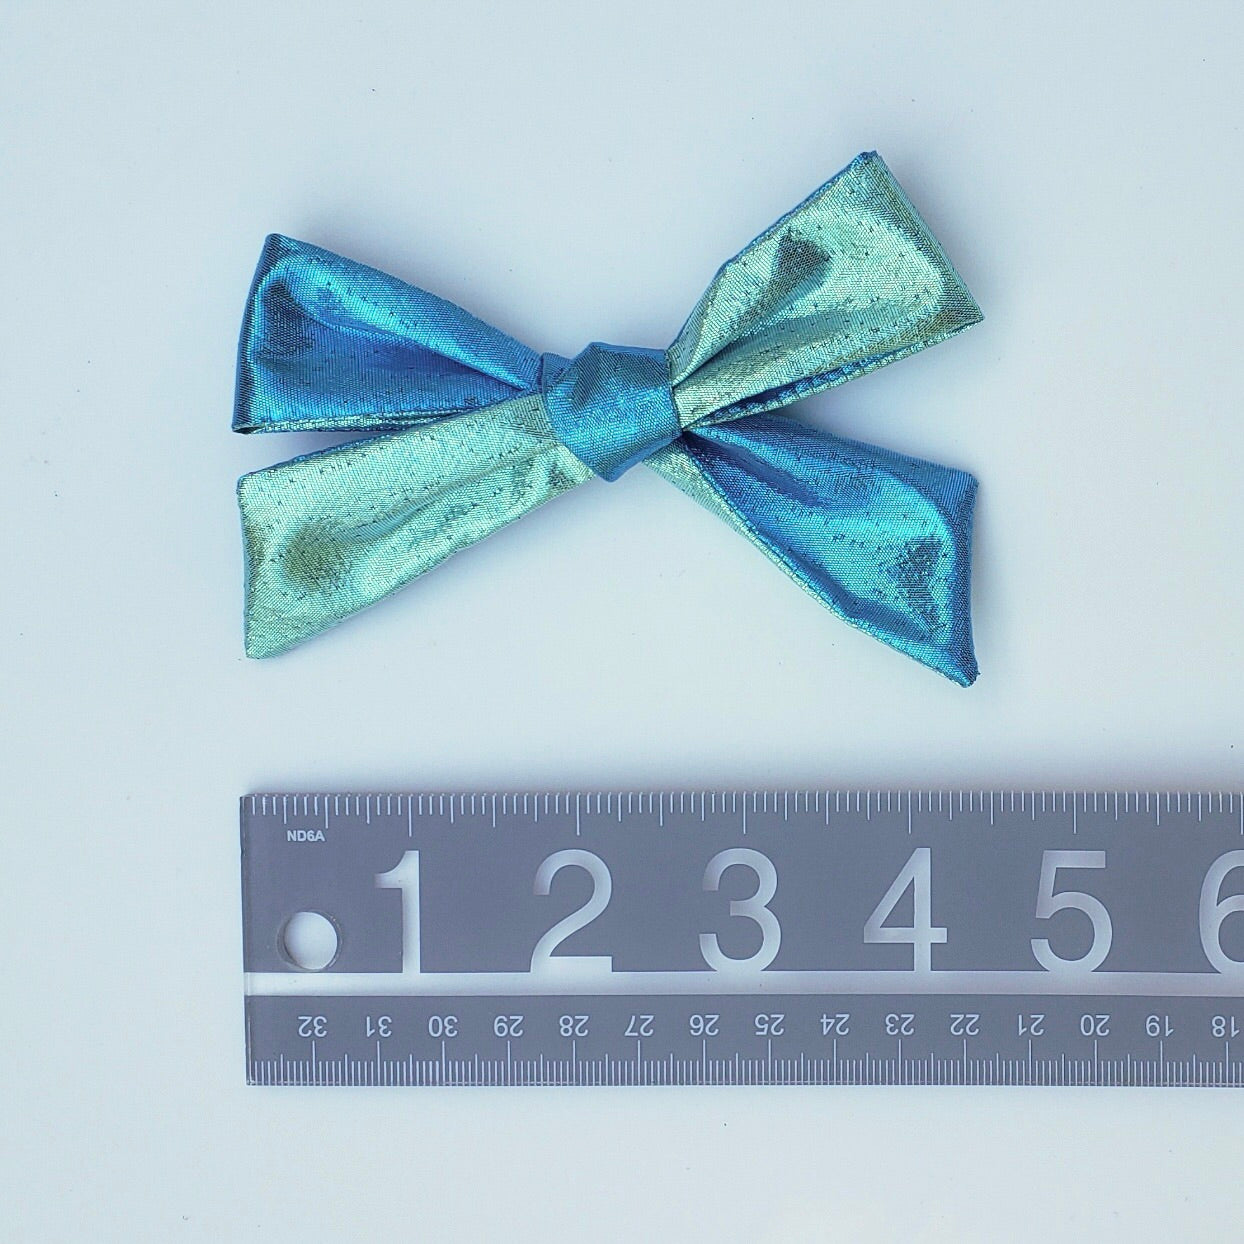 Summer blue/turquoise mermaid River bow